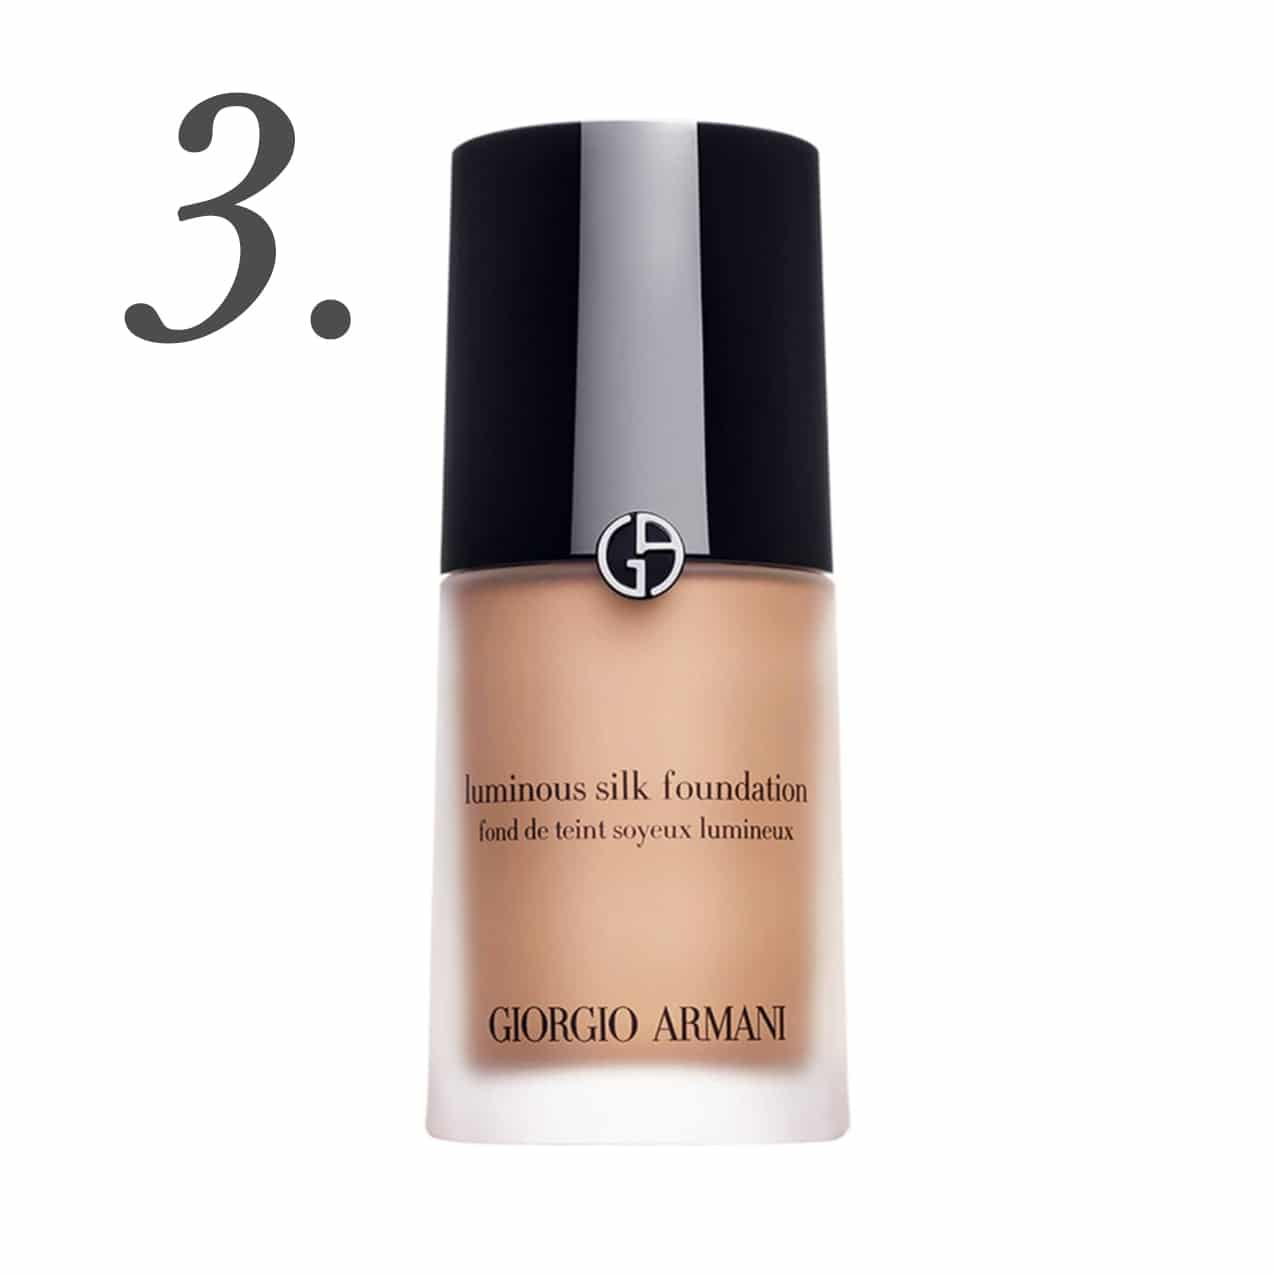 Giorgio Armani Luminous Silk Foundation | www.ashleybrookedesigns.com